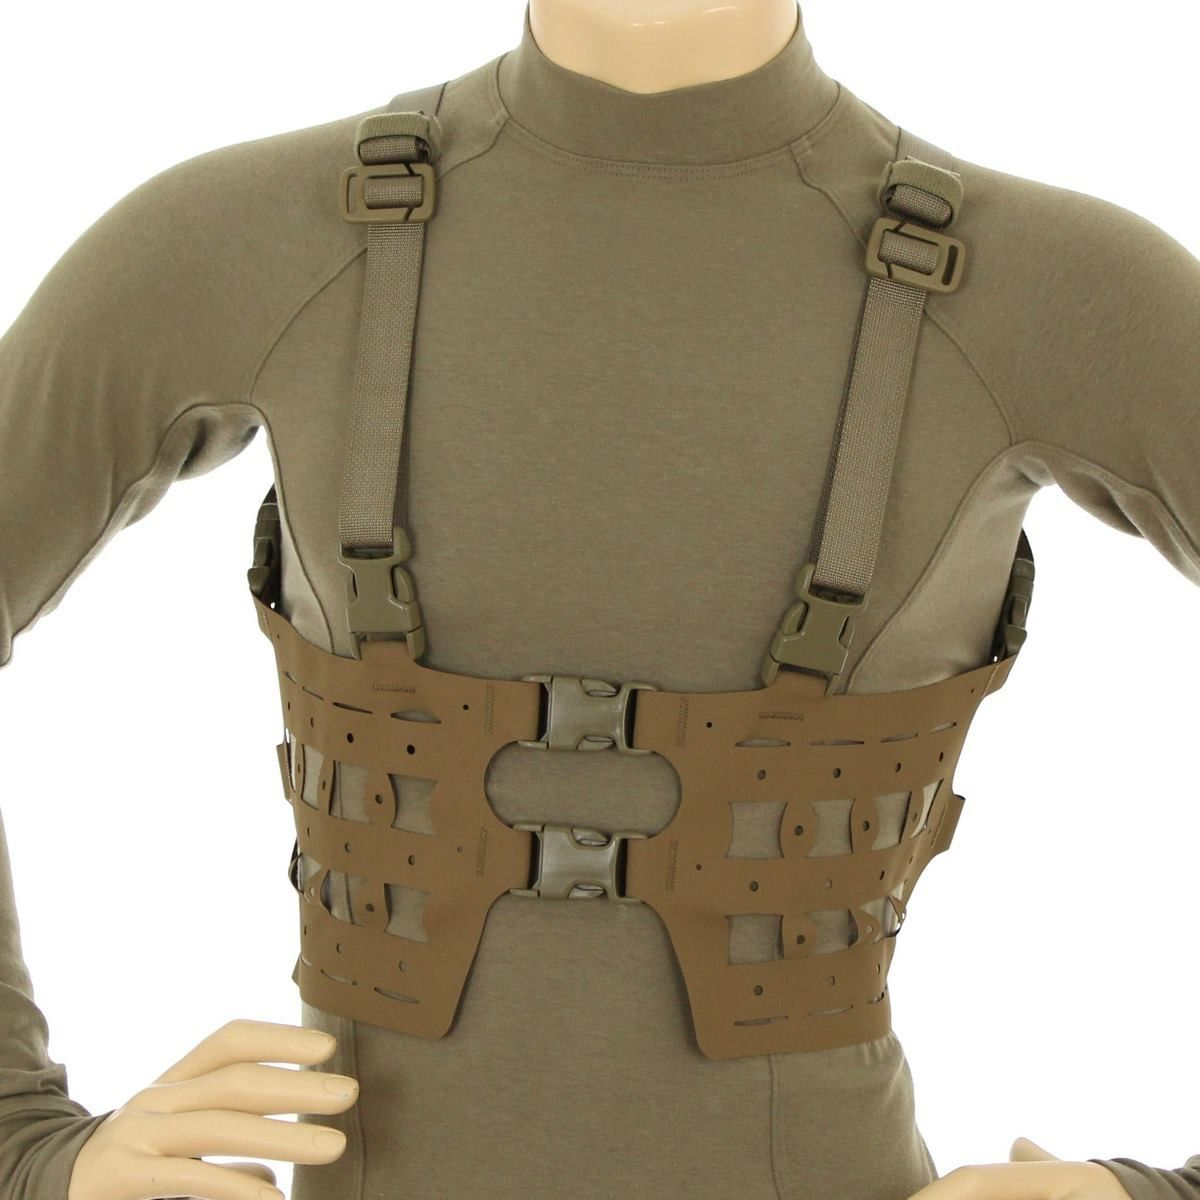 Chest rig soldier systems daily gear pinterest chest rig chest rig soldier systems daily sciox Choice Image